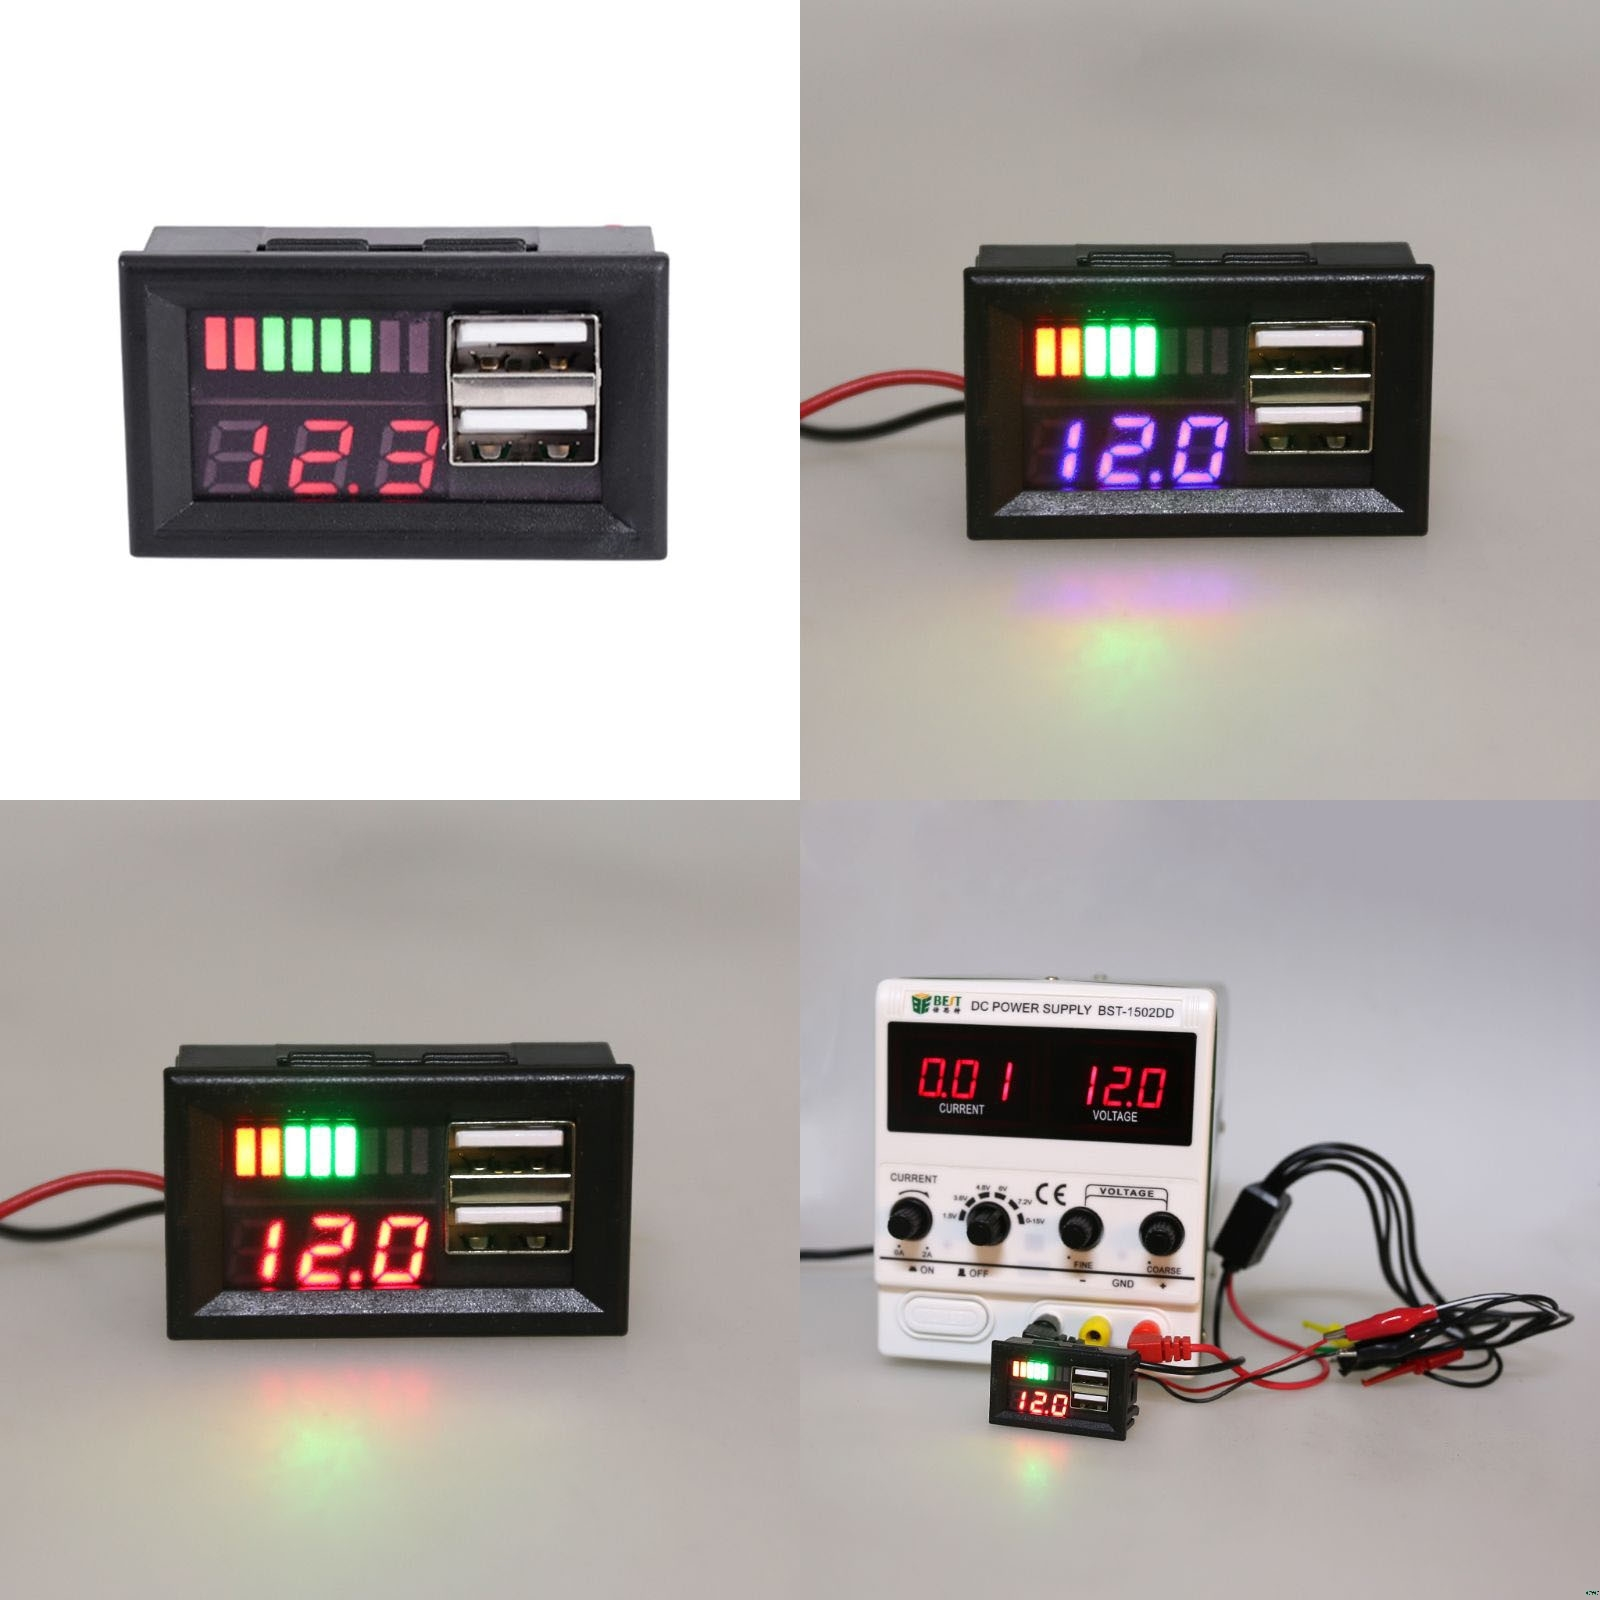 LED Digital Display Voltmeter Mini Voltage Meter Battery Tester Panel For DC 12V Cars Motorcycles Vehicles USB 5V2A Output